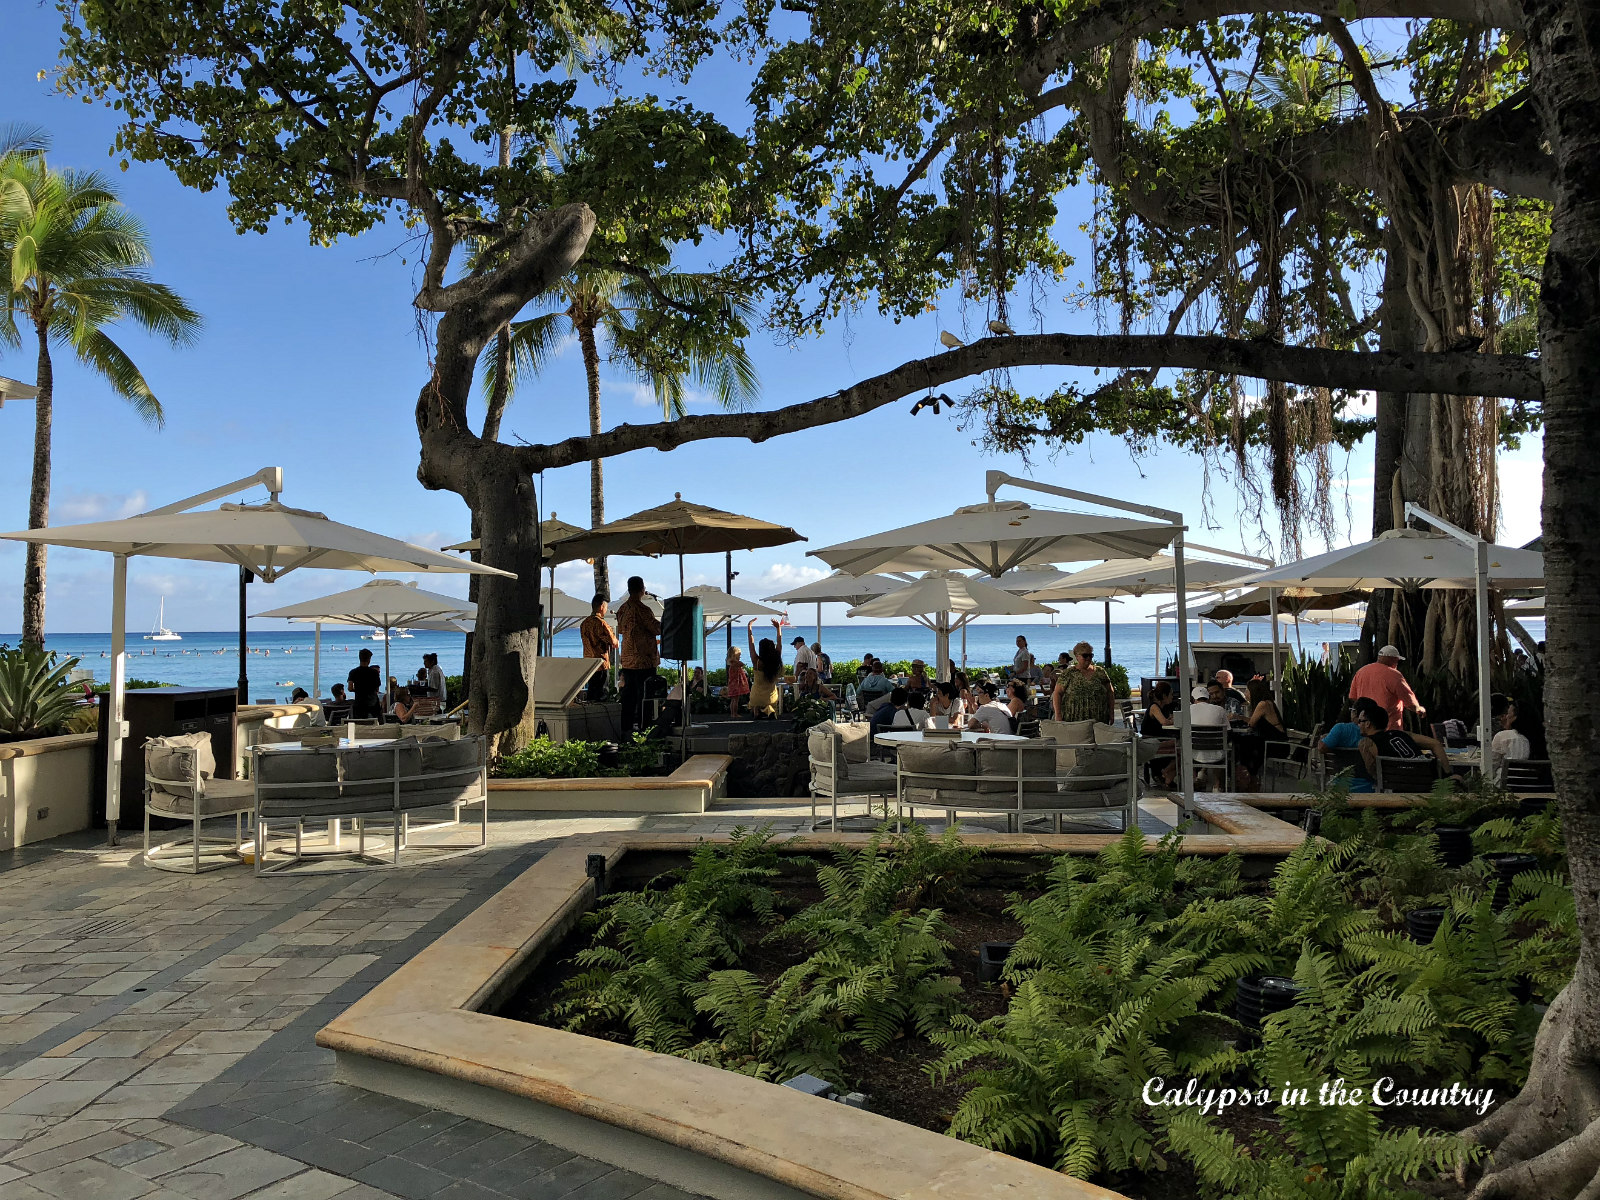 beachside dining at the Moana Surfrider Hotel